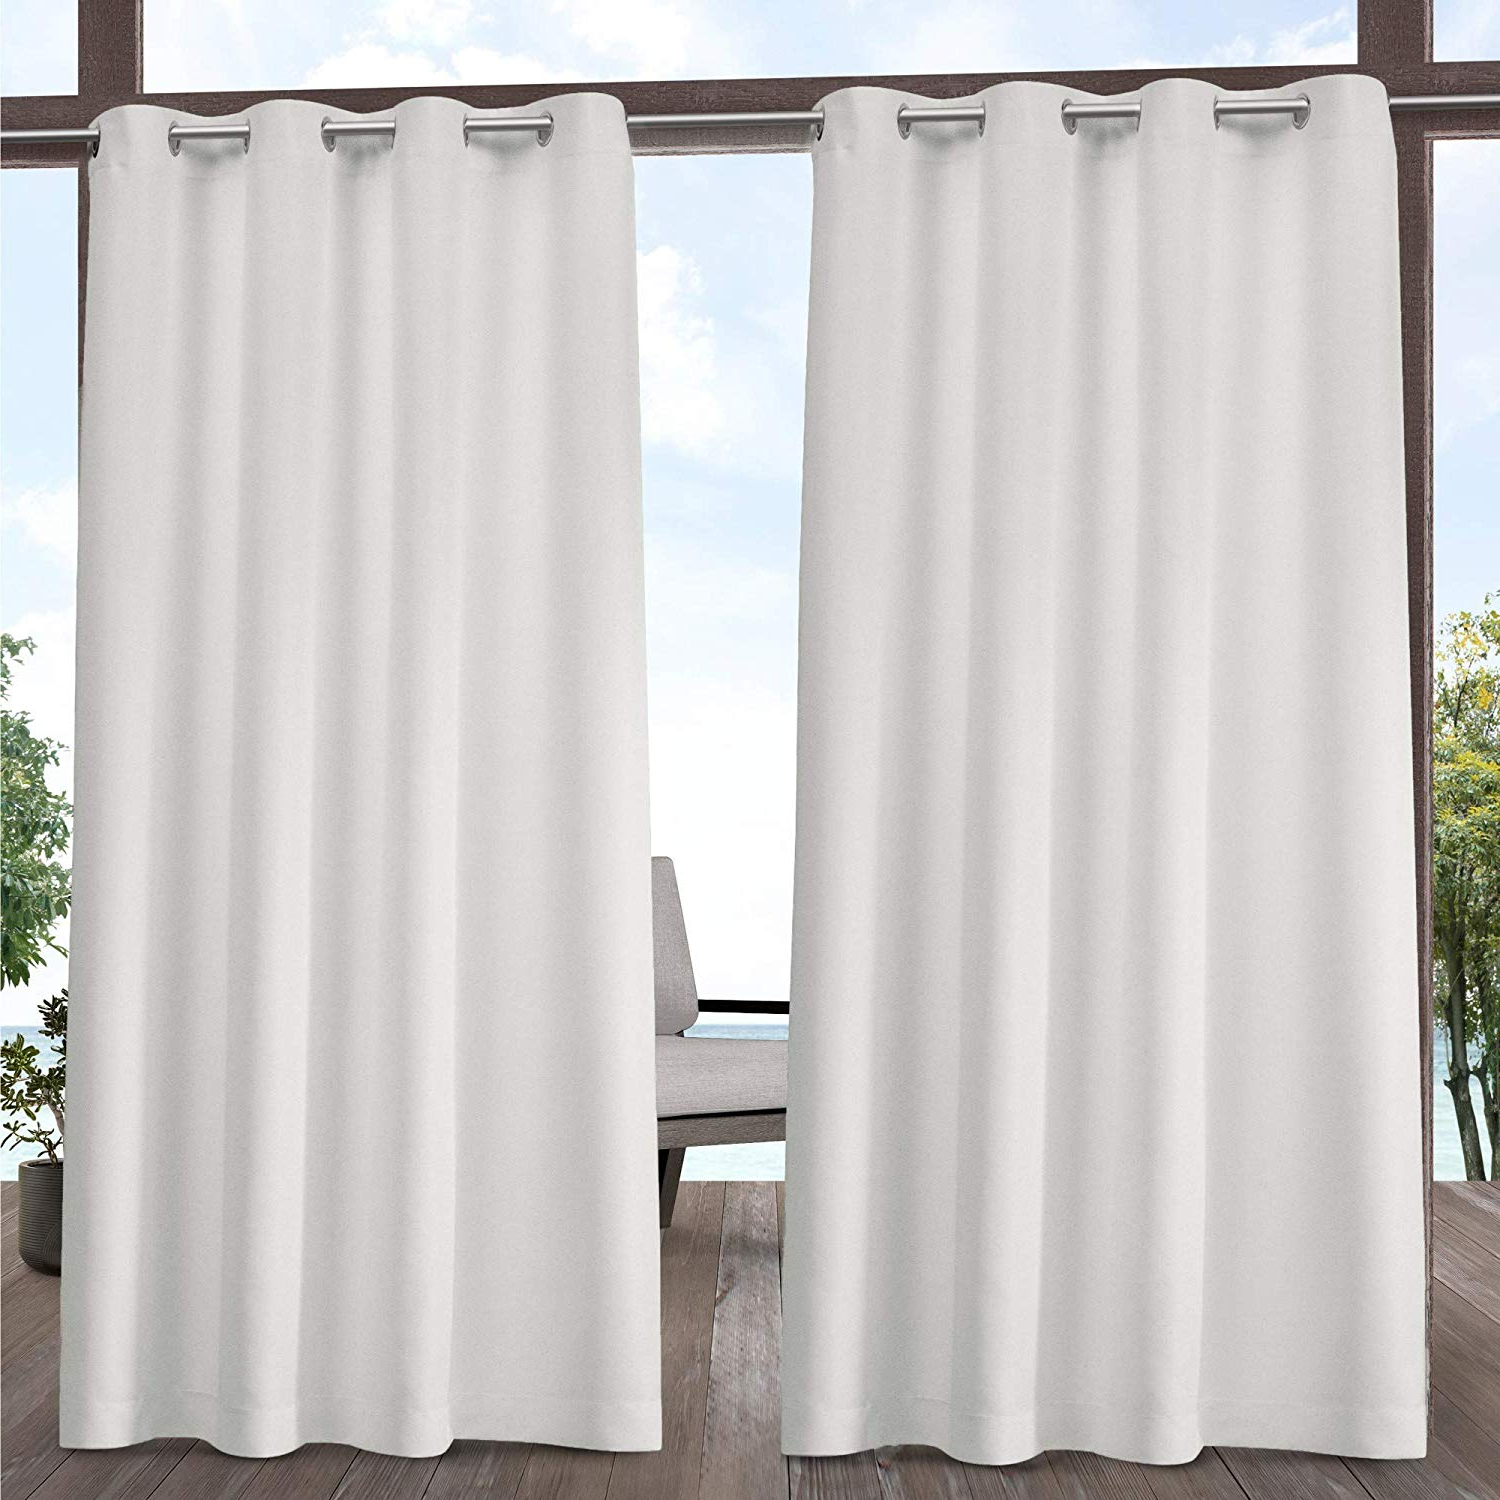 Indoor/outdoor Solid Cabana Grommet Top Curtain Panel Pairs Pertaining To 2021 Exclusive Home Curtains Indoor/outdoor Solid Panel Pair, 54X84, Vanilla (View 7 of 20)